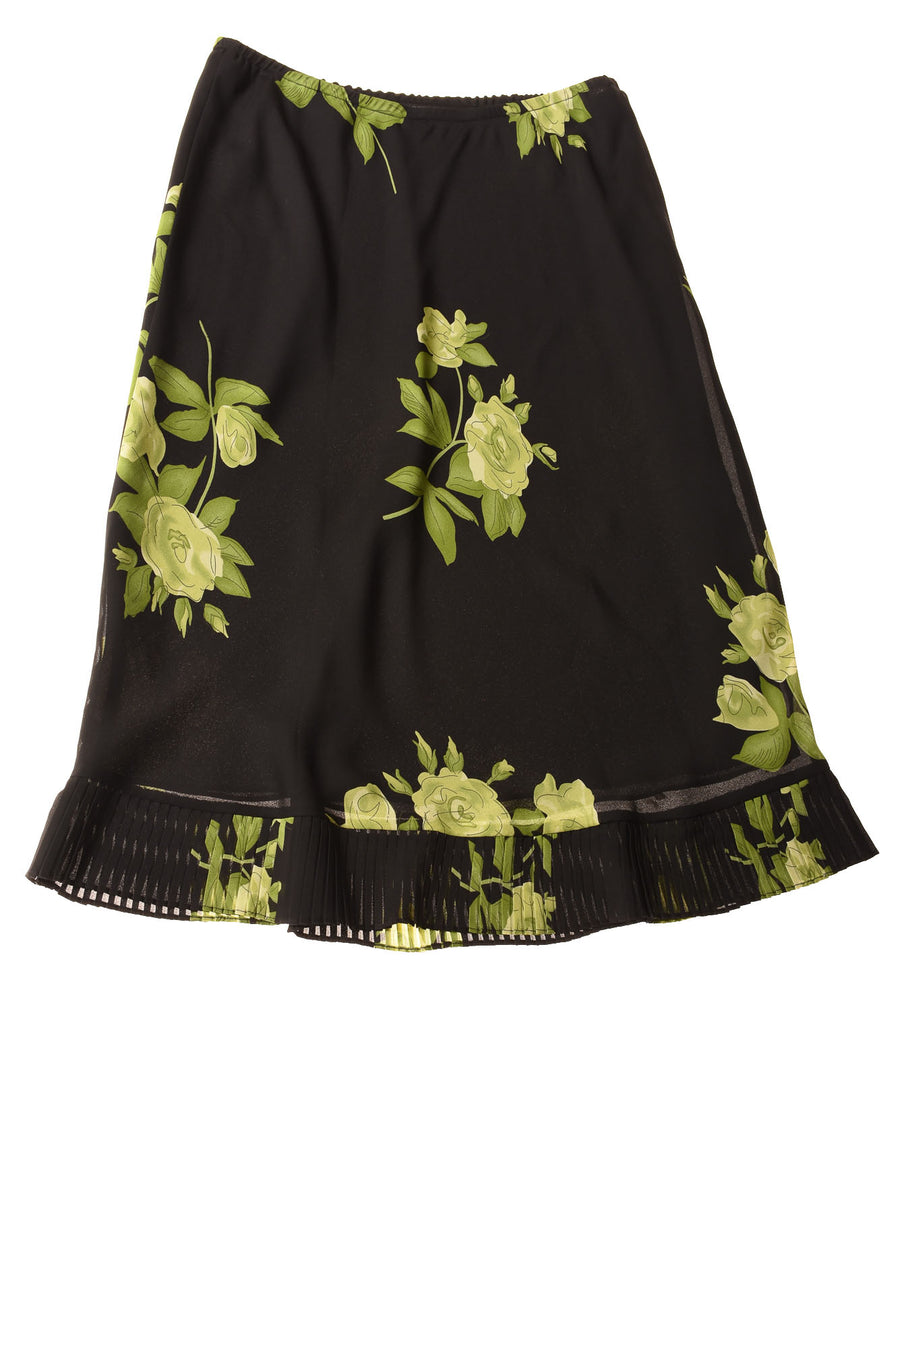 Women's Skirt By No Brand